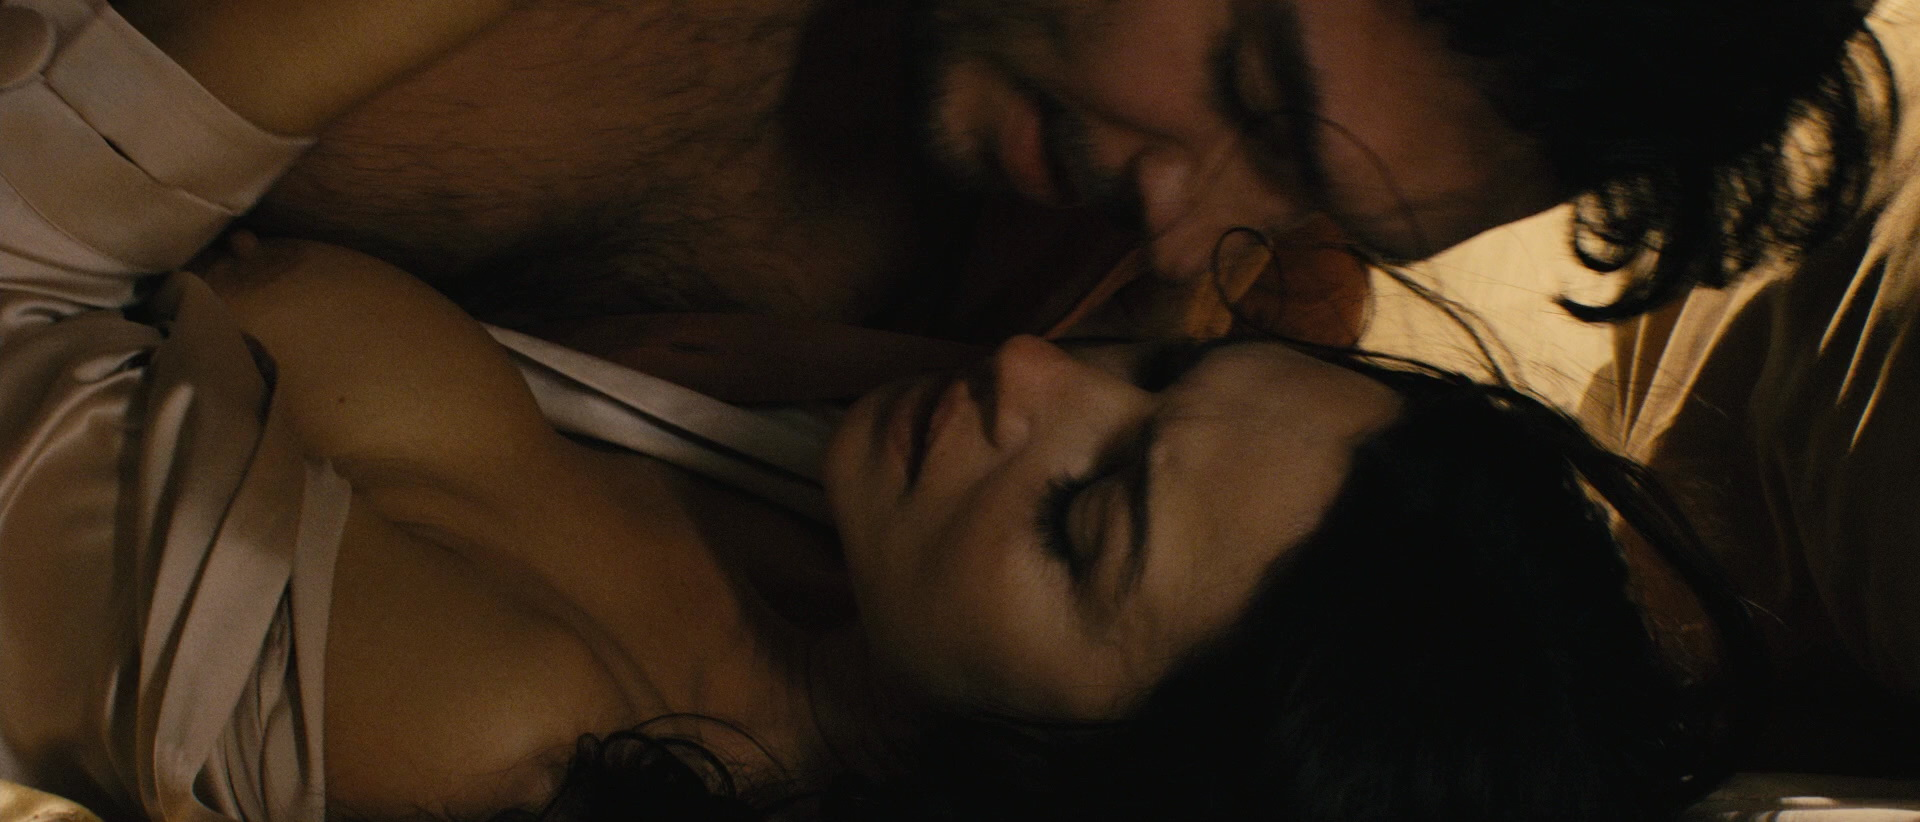 Monica Bellucci – Don't Look Back (2009) HD 1080p